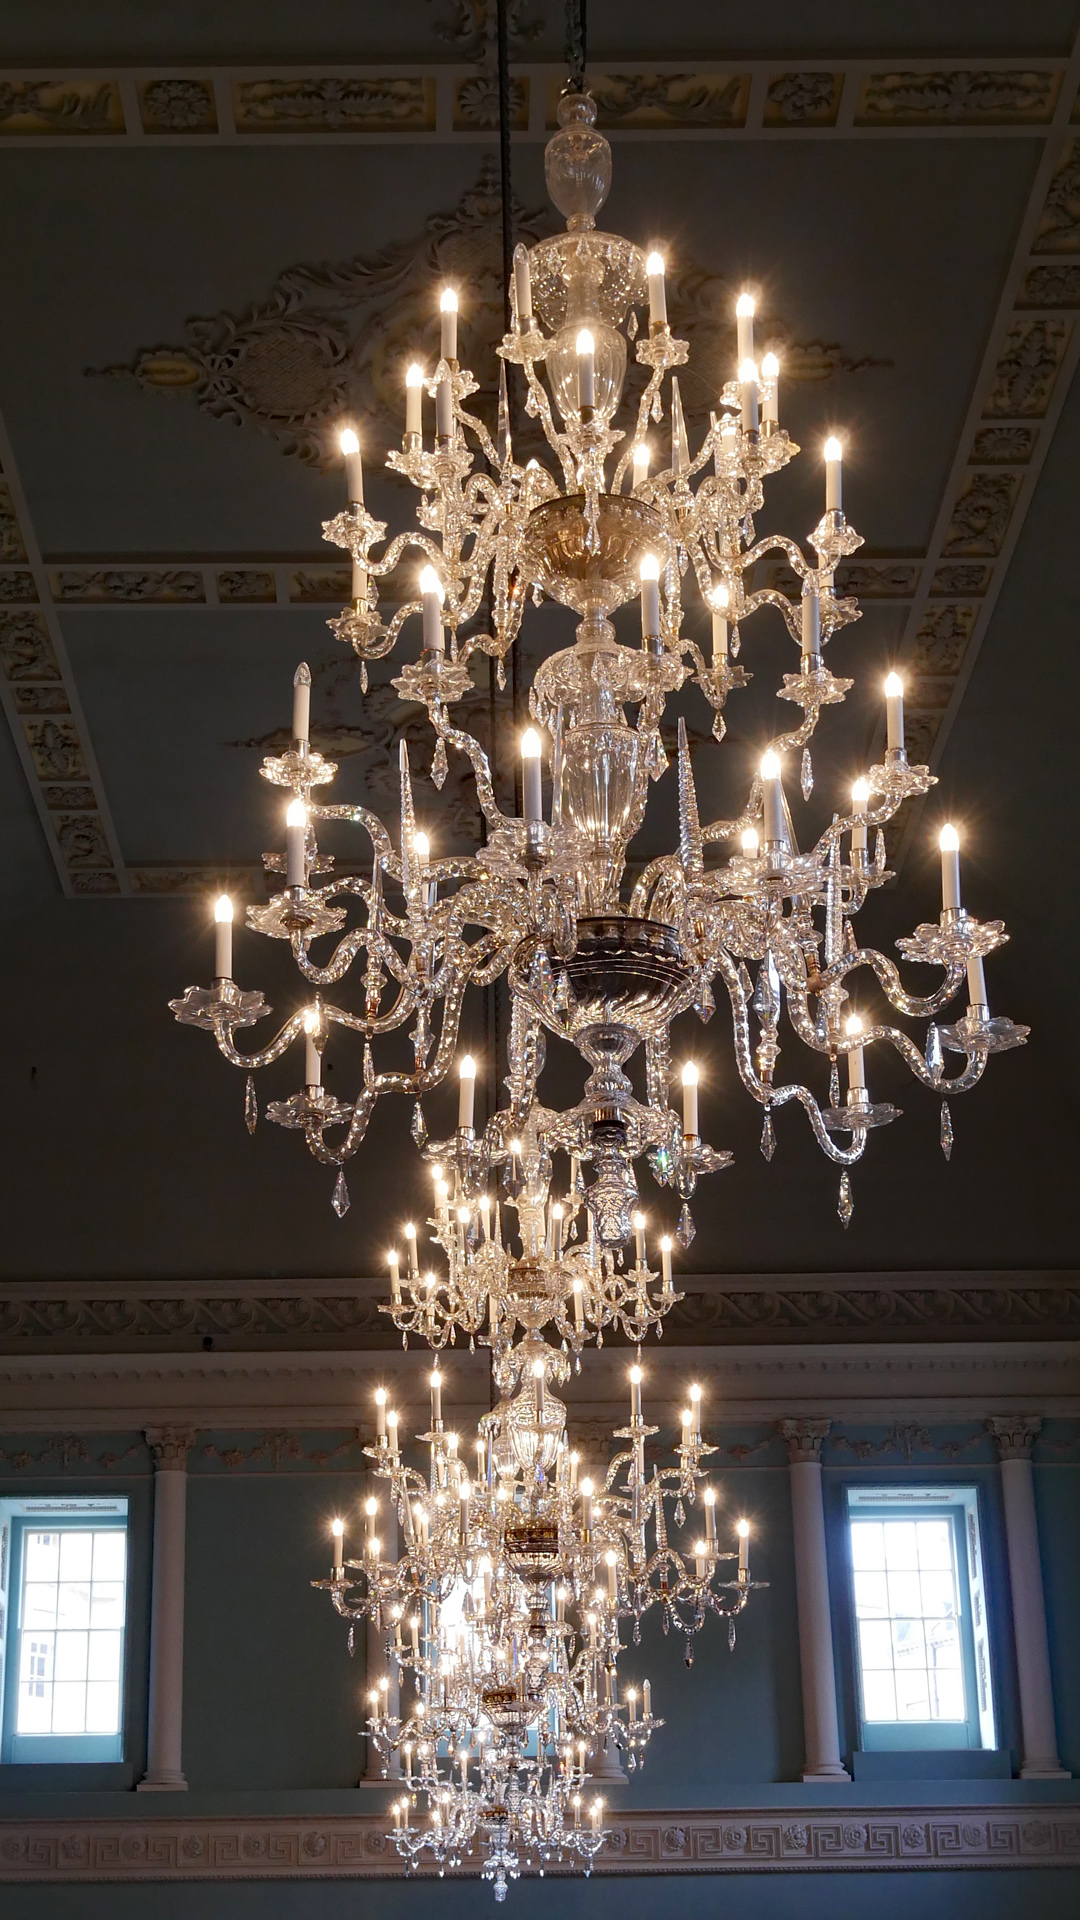 Assembly rooms Chandeliers Bath